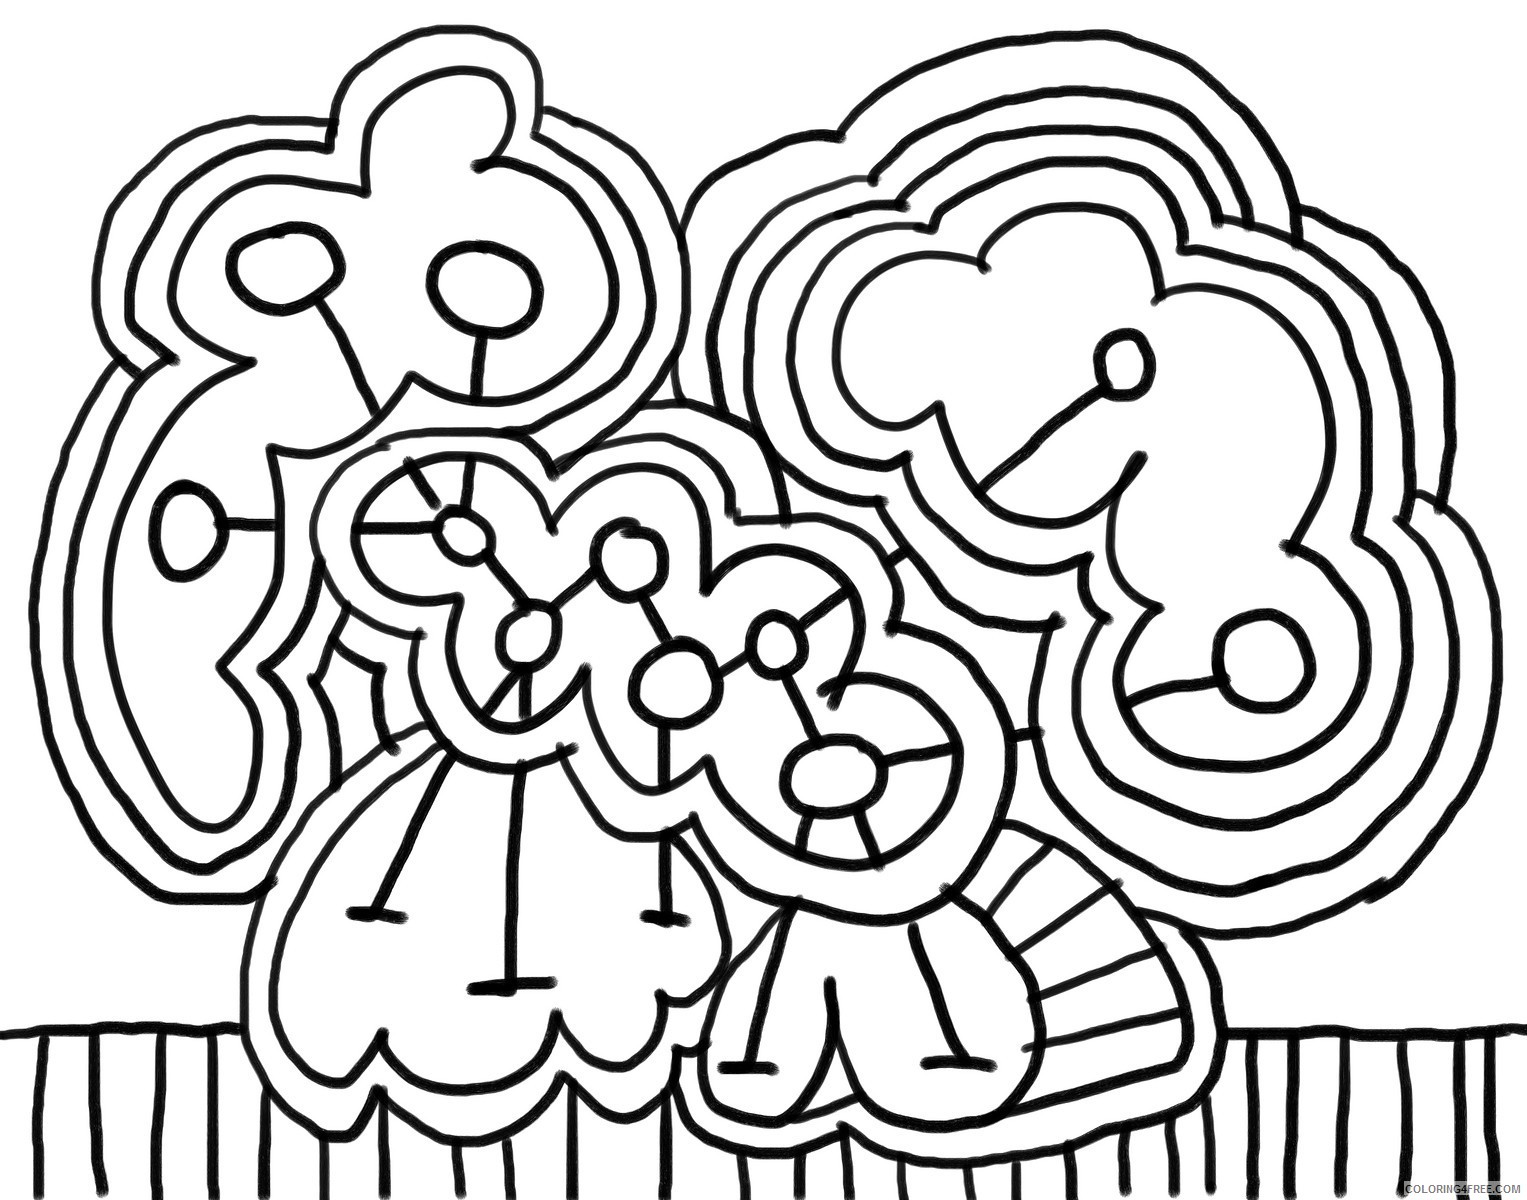 abstract art printable coloring pages for kids Coloring4free